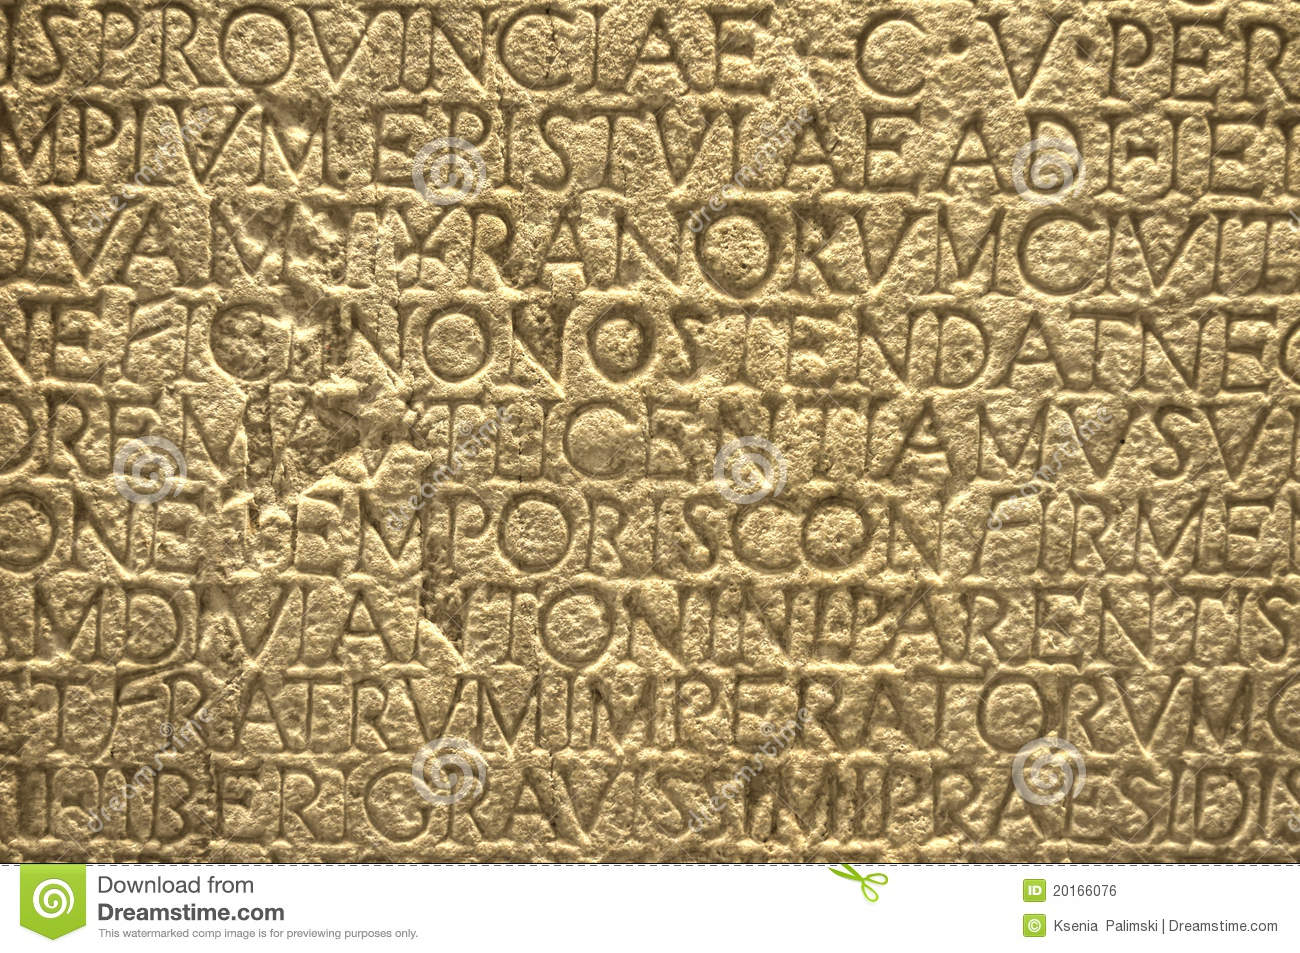 Greek Writing Text Ancient Letters On The Wall Royalty Free Stock ...